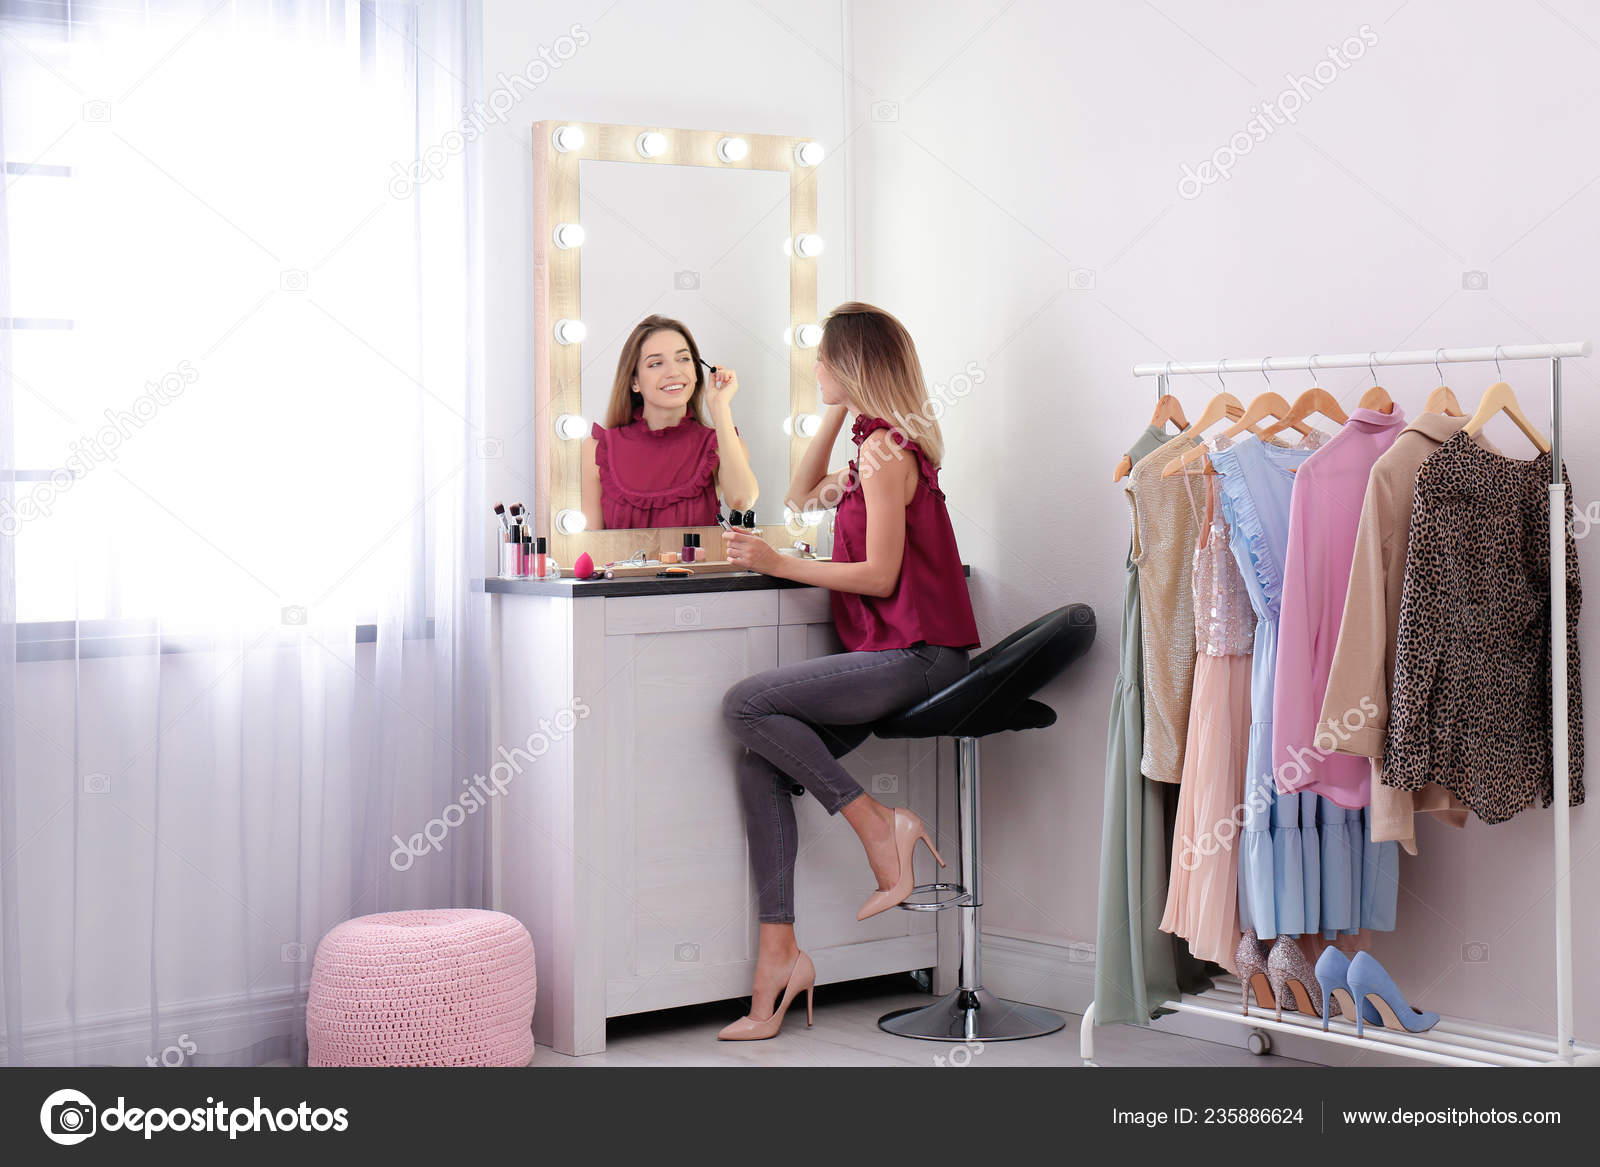 Woman Applying Makeup Mirror Light Bulbs Dressing Room